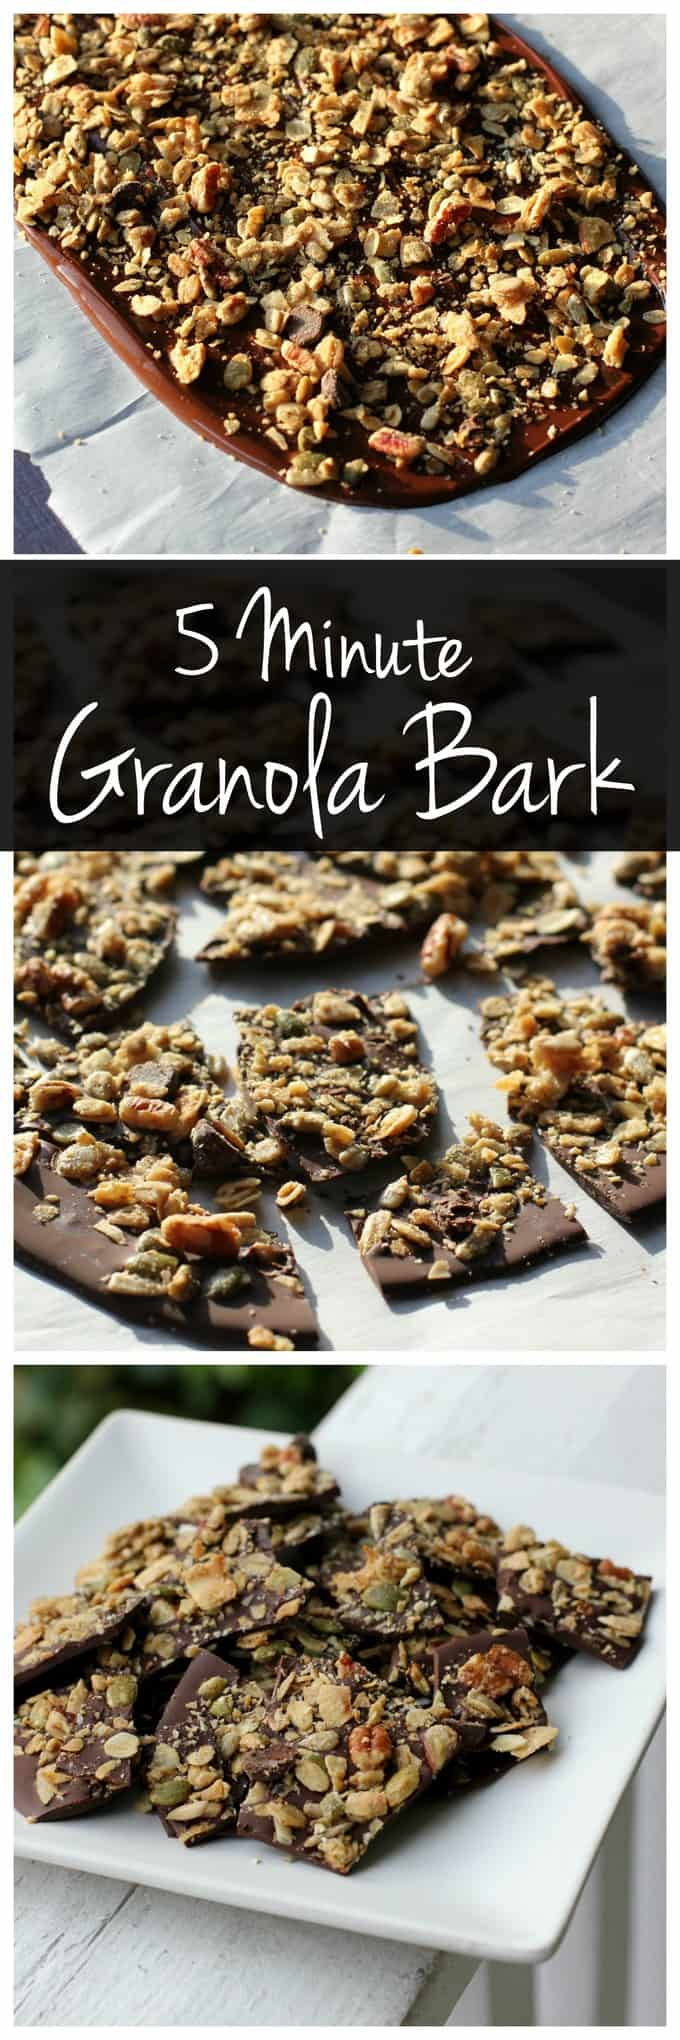 This chocolate granola bark is a sweet and salty dessert that only takes 5 minutes of prep! It\'s a perfect no-bake dessert that kids and adults will both love!